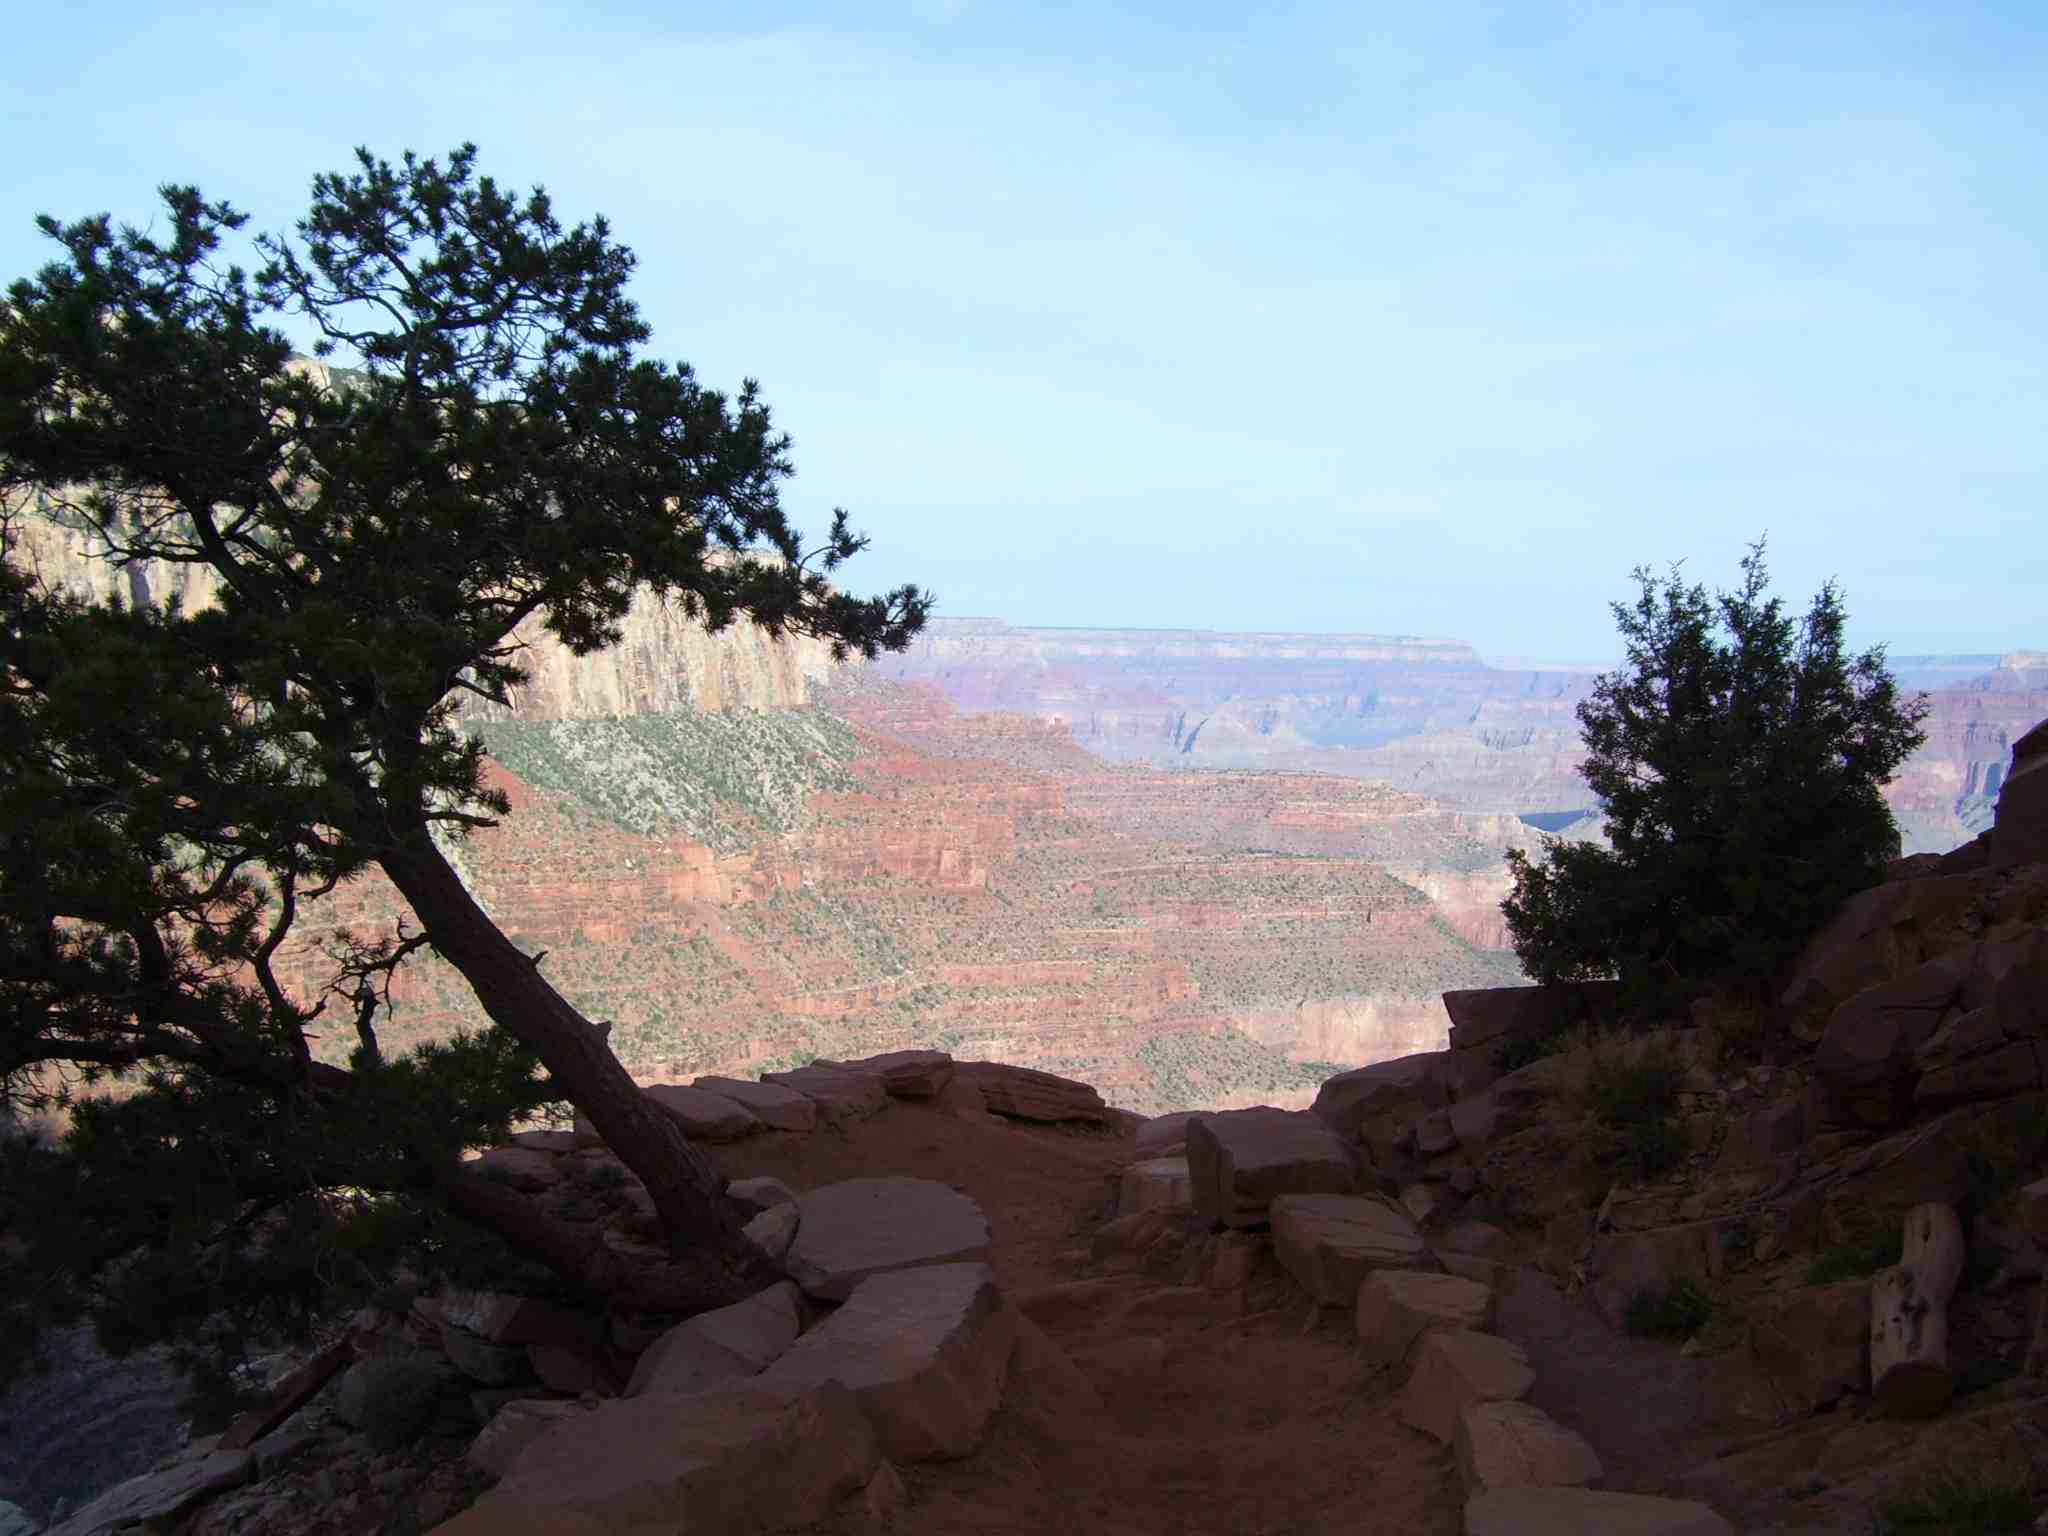 Photo of Grand Canyon with trees in the foreground